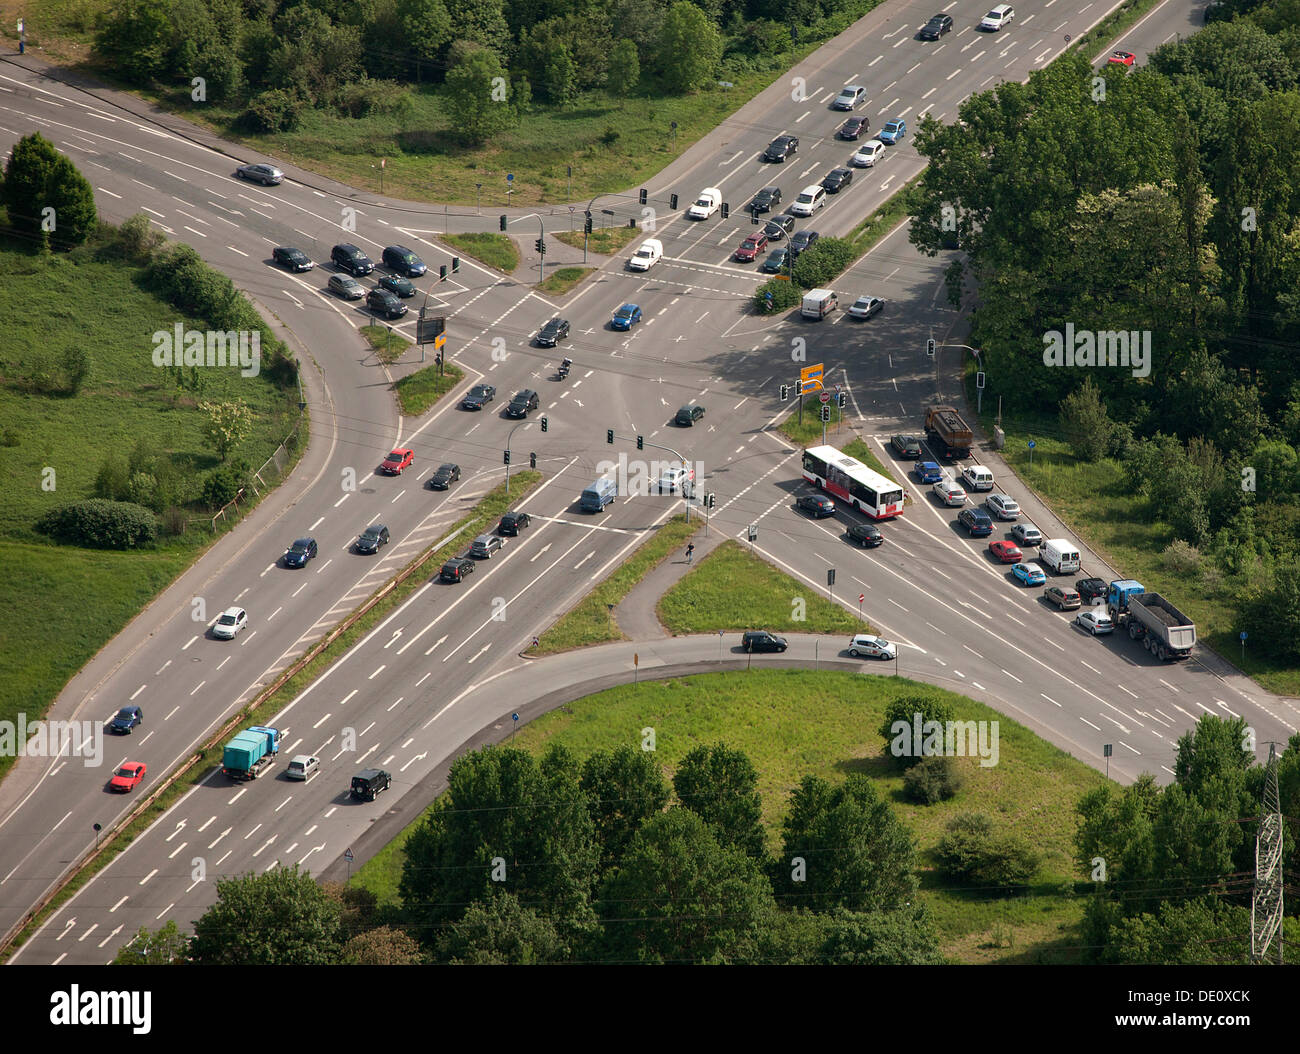 Aerial view, crossroads, Prosperstrasse street, Arensbergstrasse street, B224 federal highway, Bottrop-Boy, Ruhr area - Stock Image